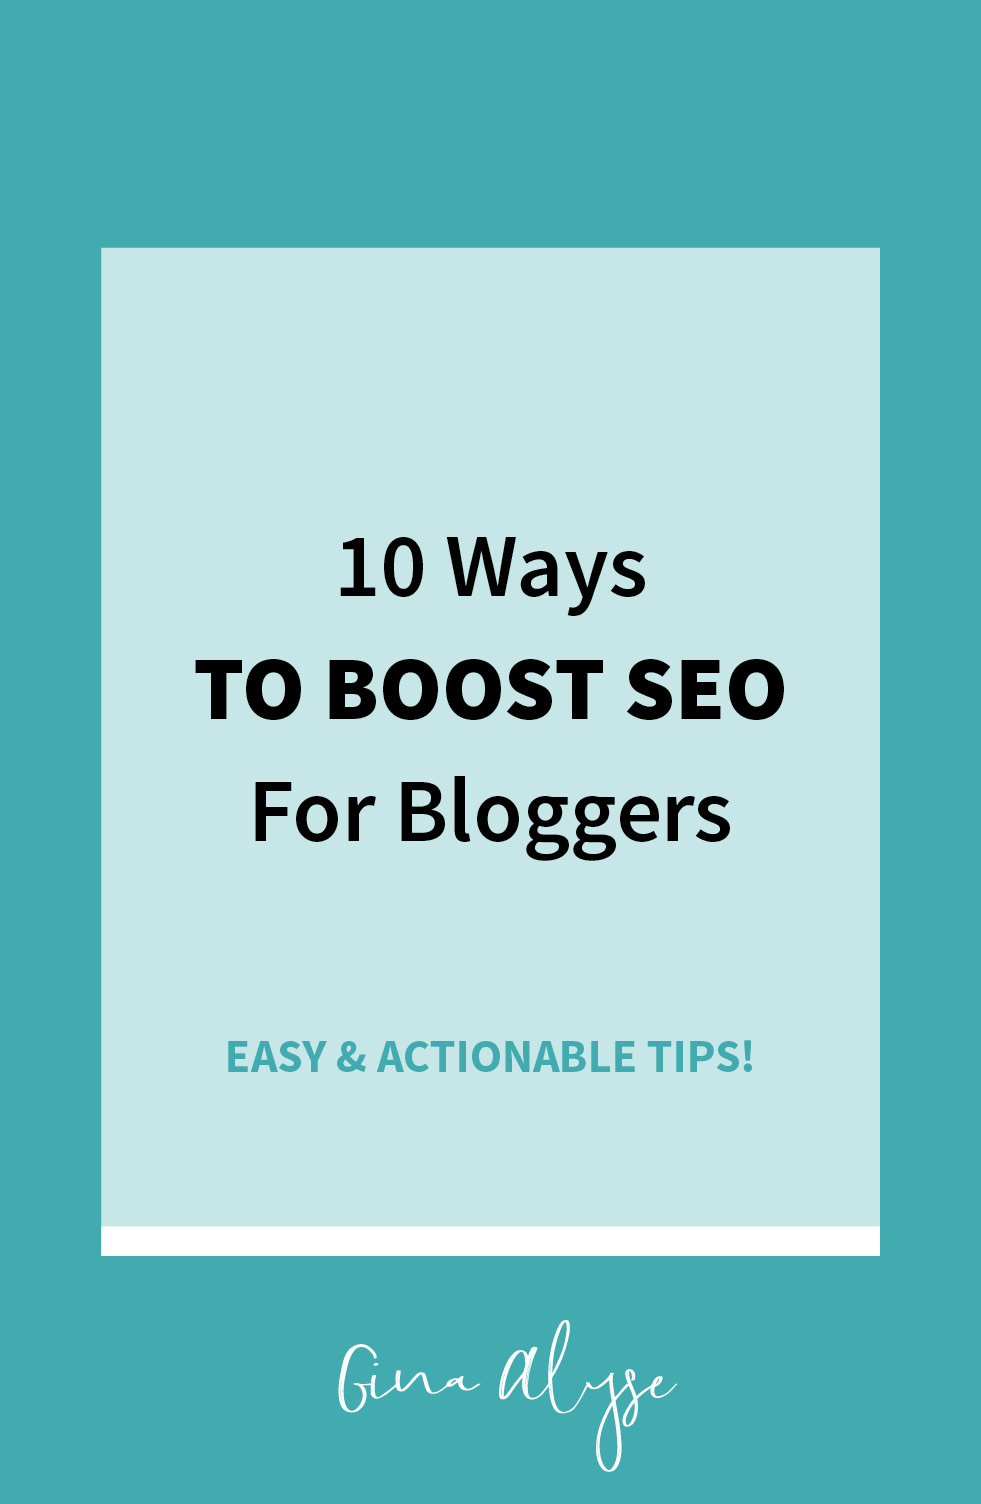 How to Boost SEO for Bloggers & Increase Your Traffic